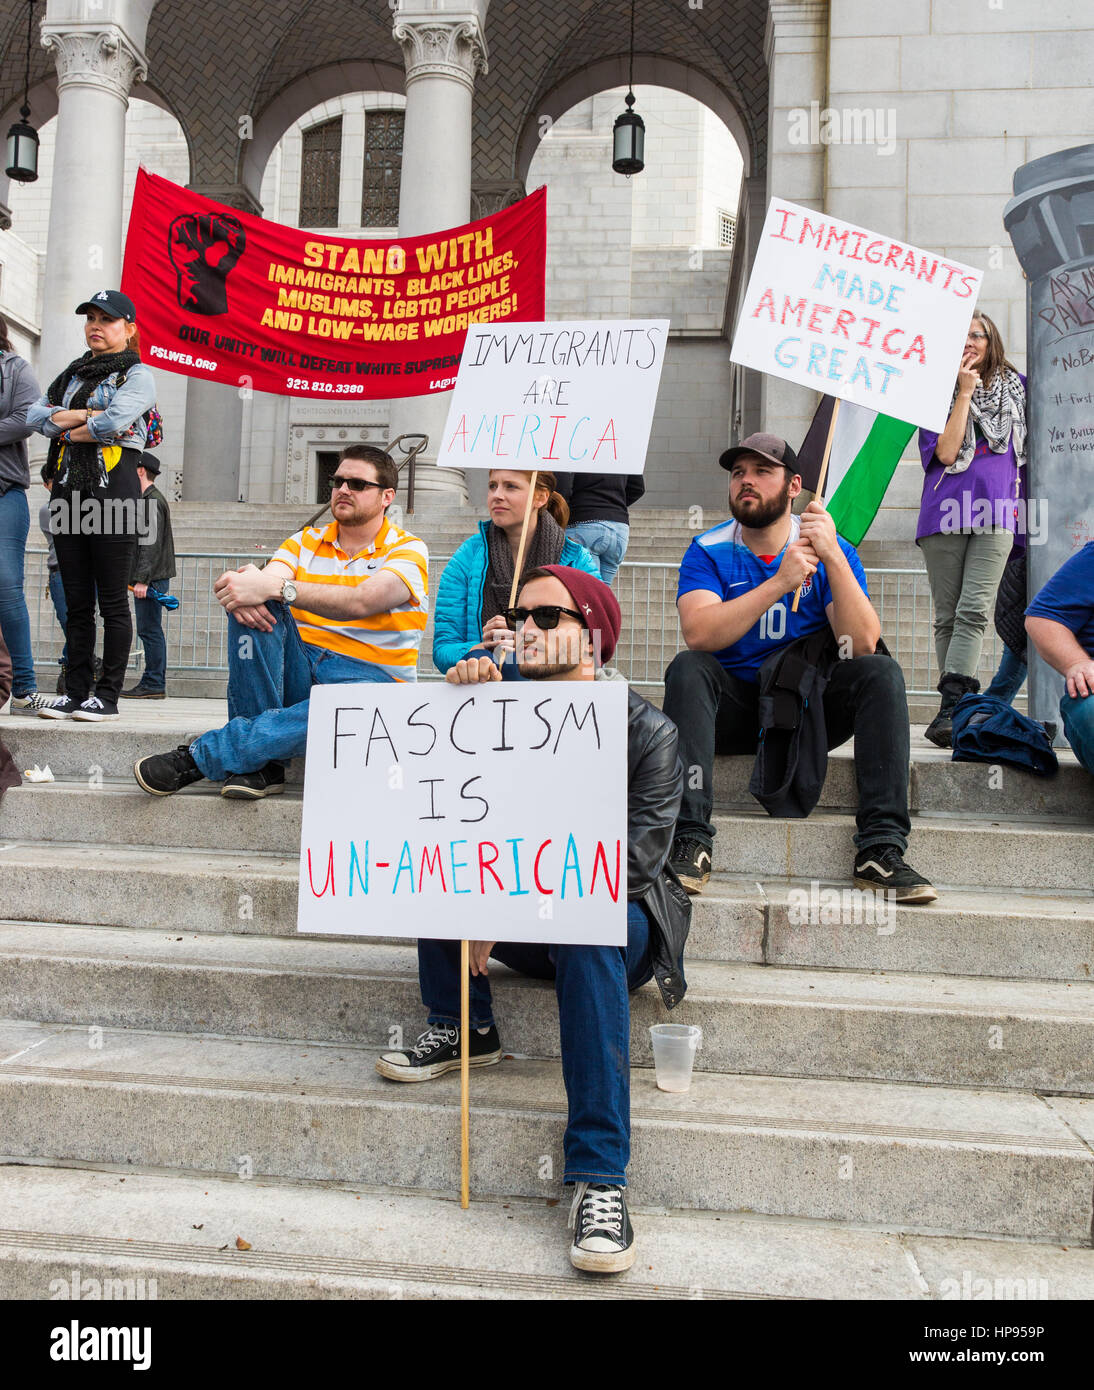 Immigrant rights protest at City Hall, Los Angeles, California. - Stock Image